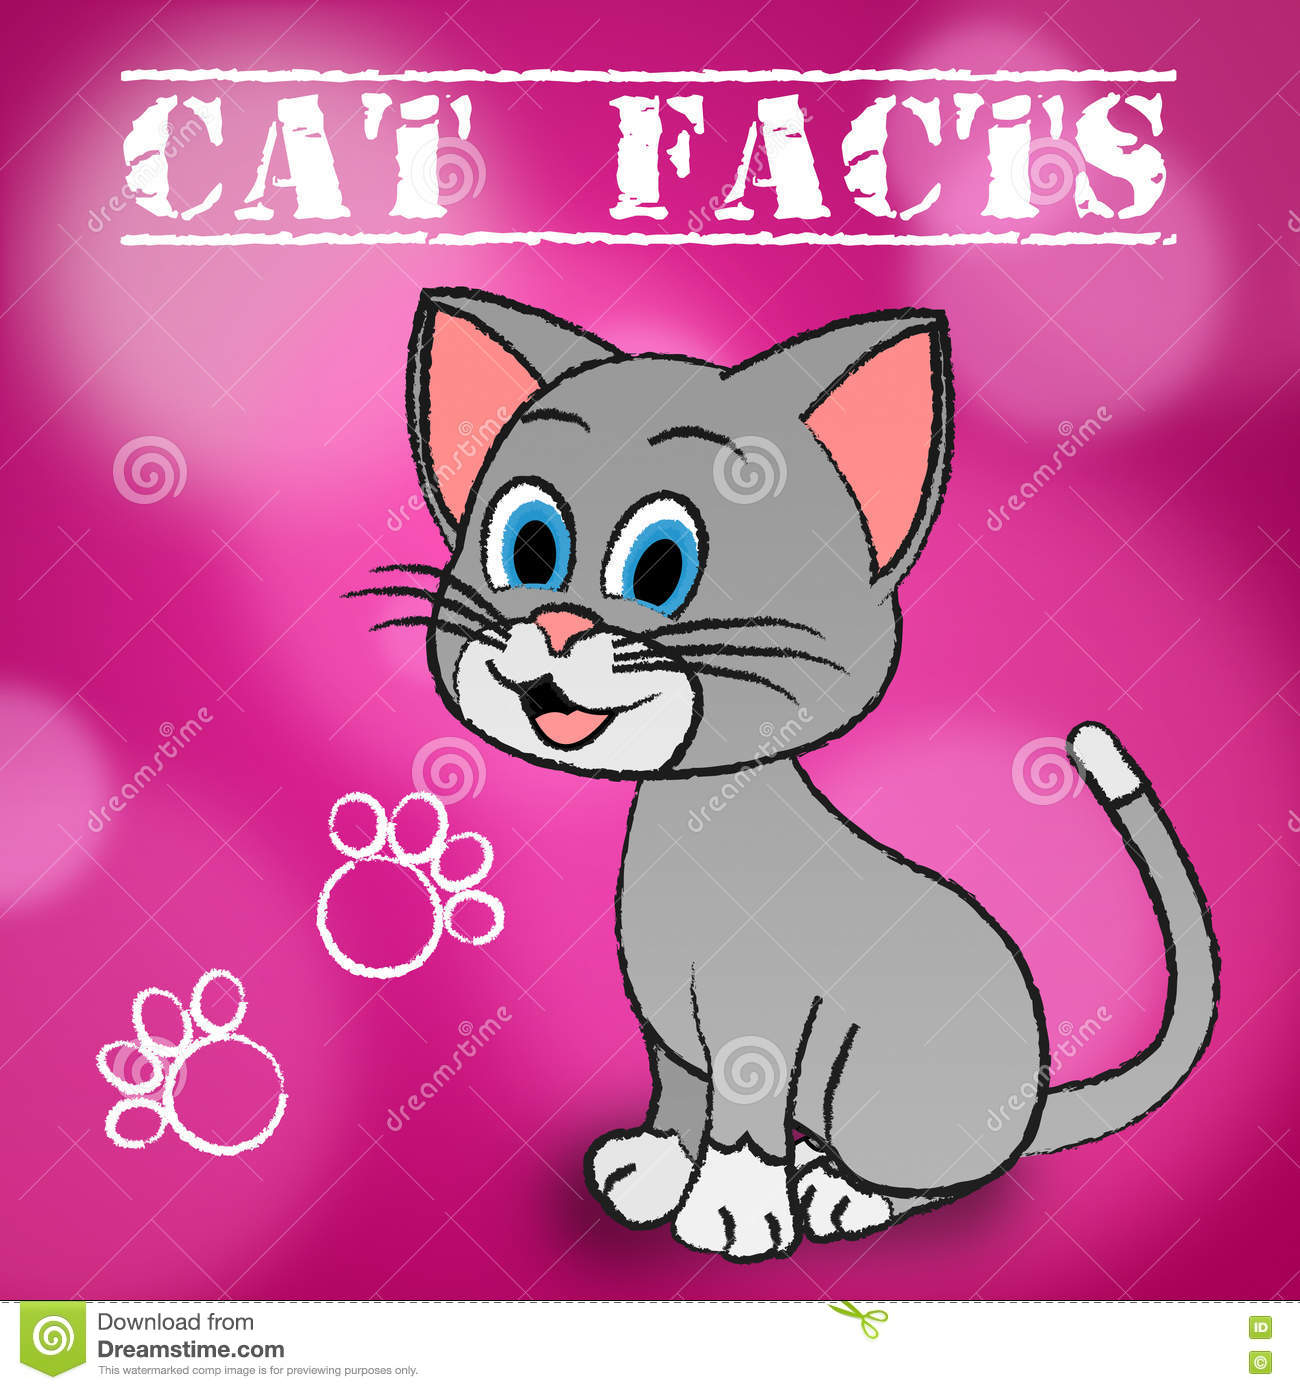 Cat Facts Indicates Details Kitty en Huisdieren